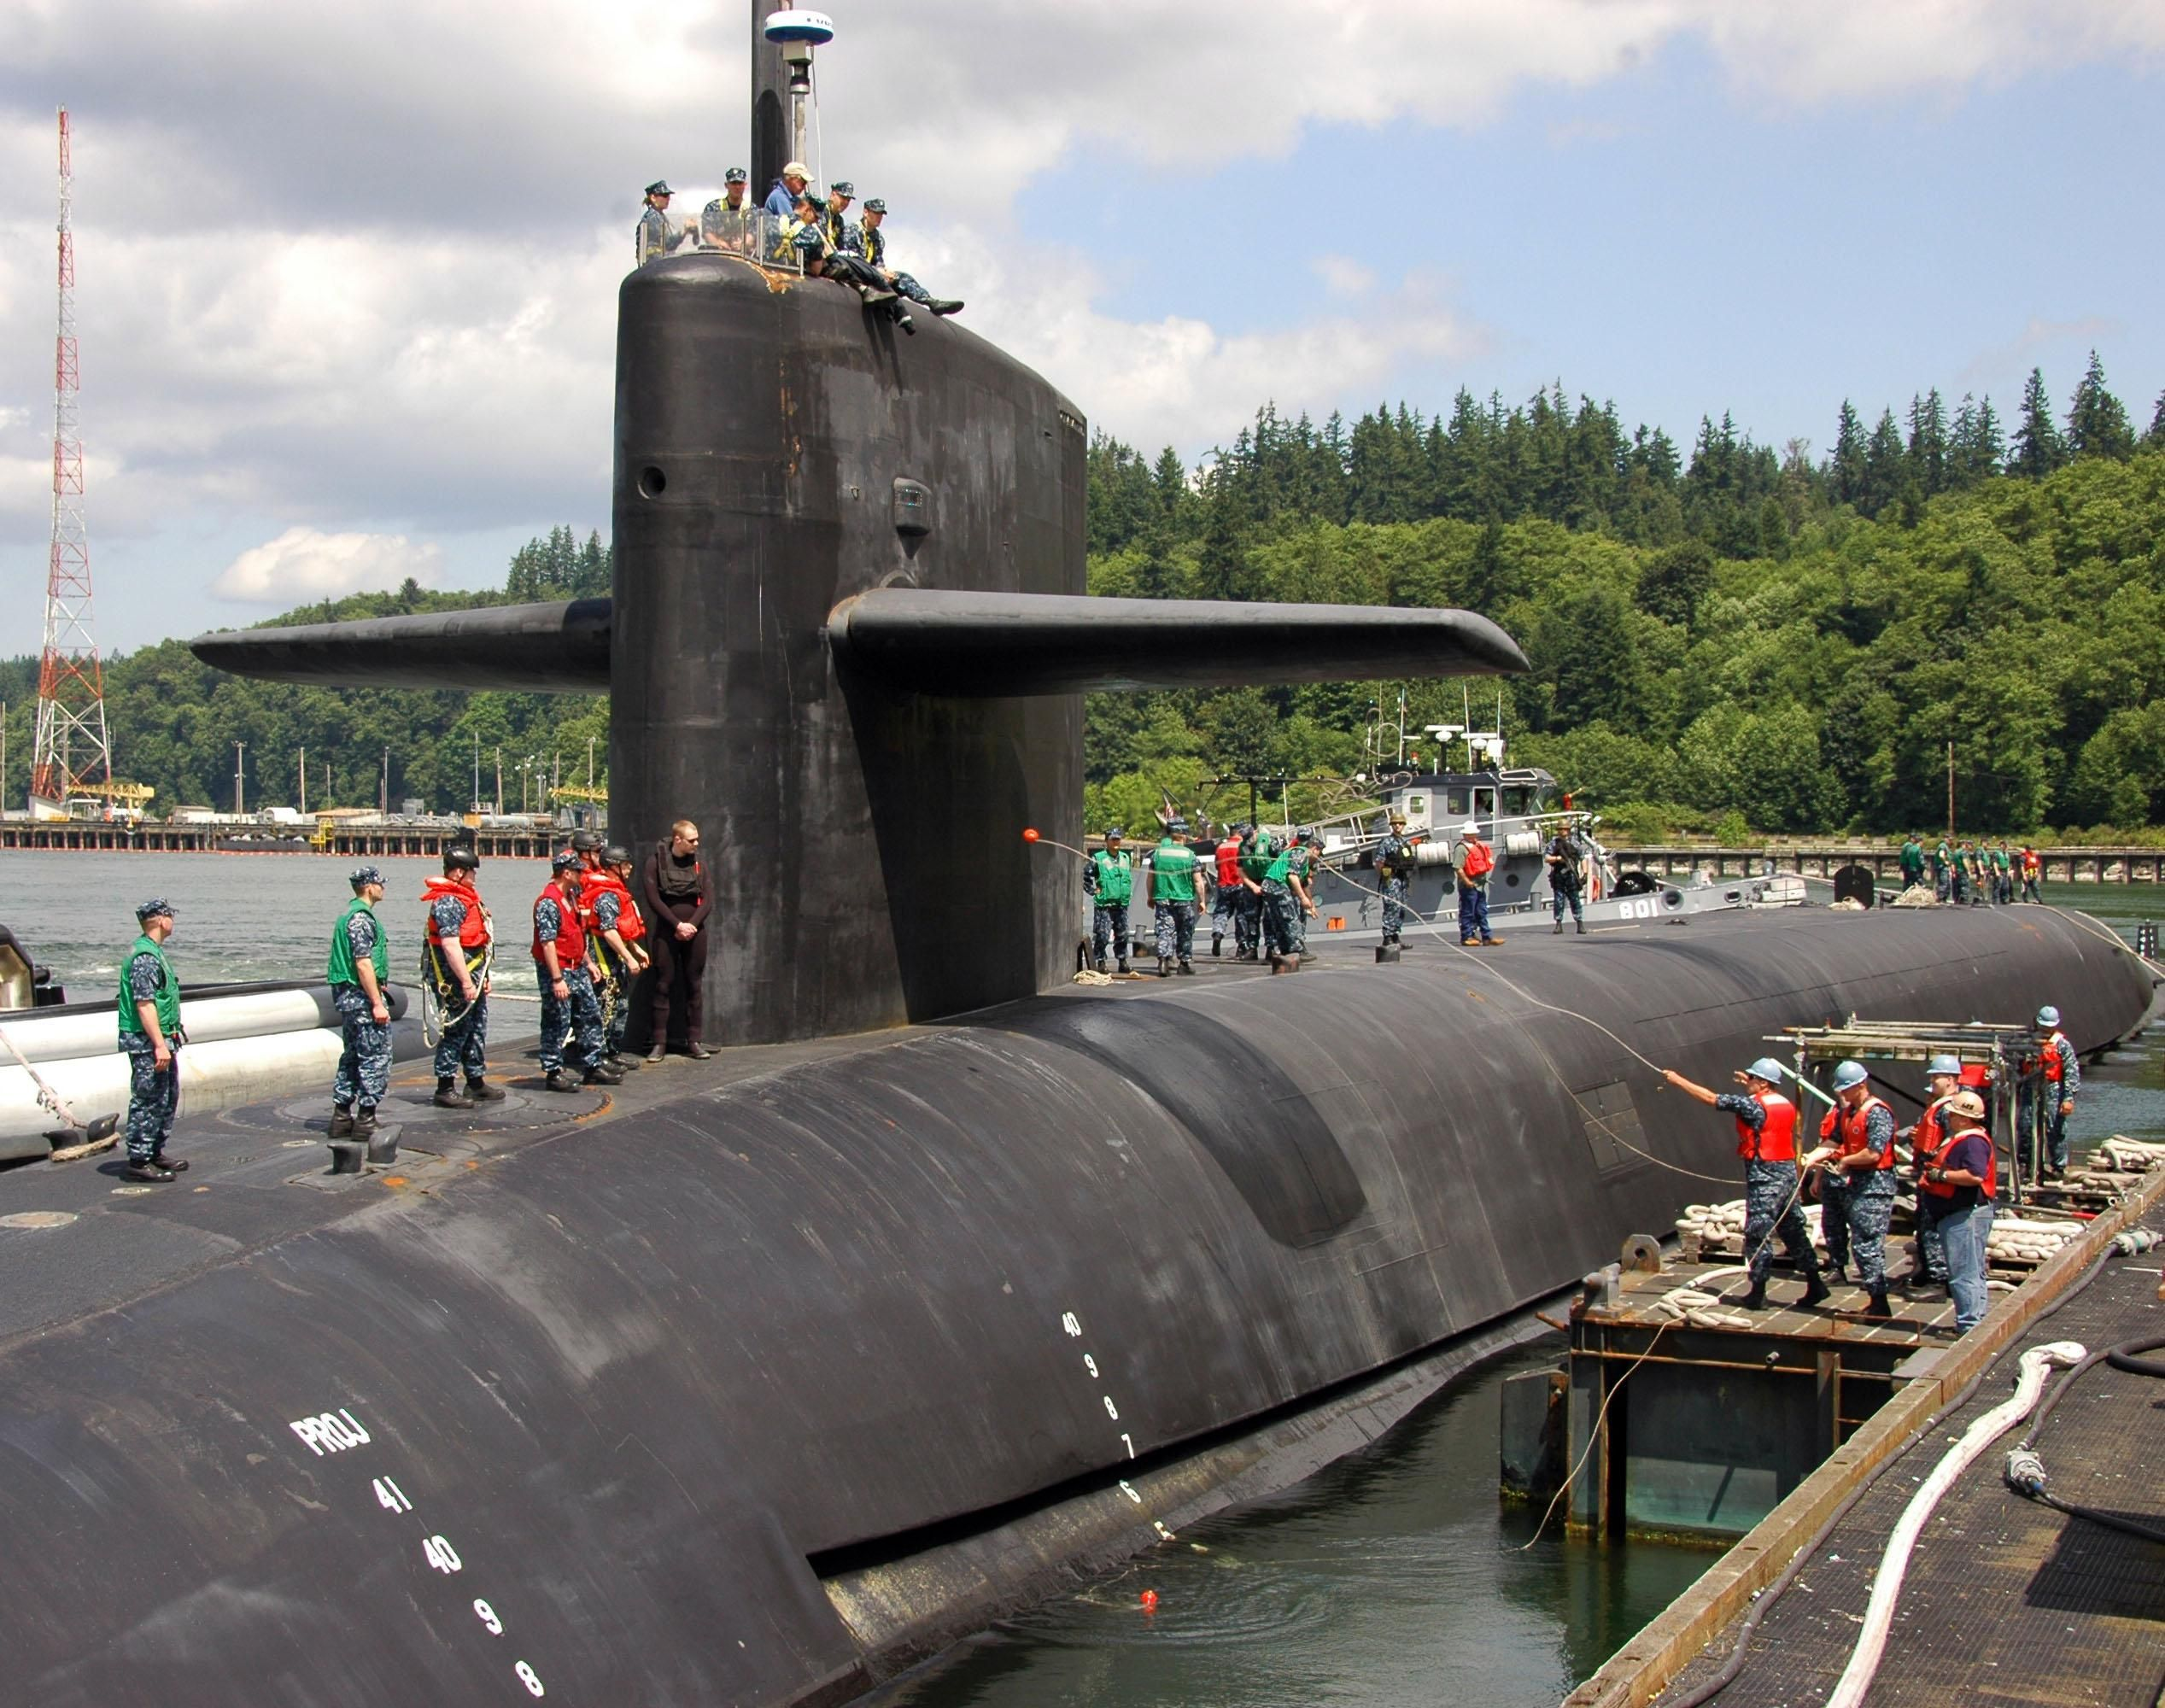 On this day in 1900, America's Navy accepted its first submarine. Today, submarines like the USS Maine are some of the most complex technological machines ever built. #Navy #USNavy #AmericasNavy navy.com